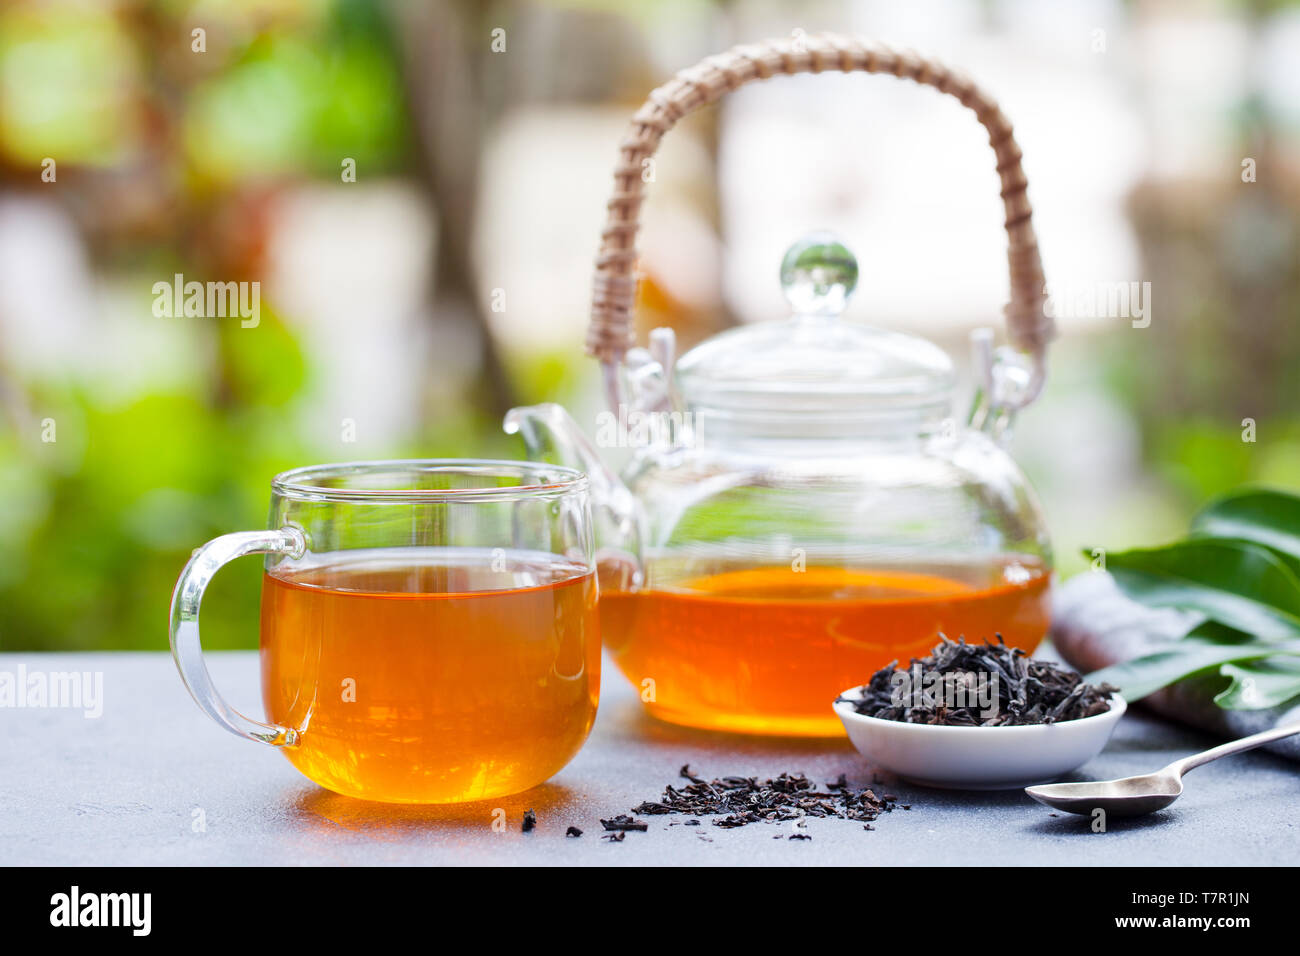 Black tea in glass cup and teapot on summer outdoor background. Copy space. Stock Photo